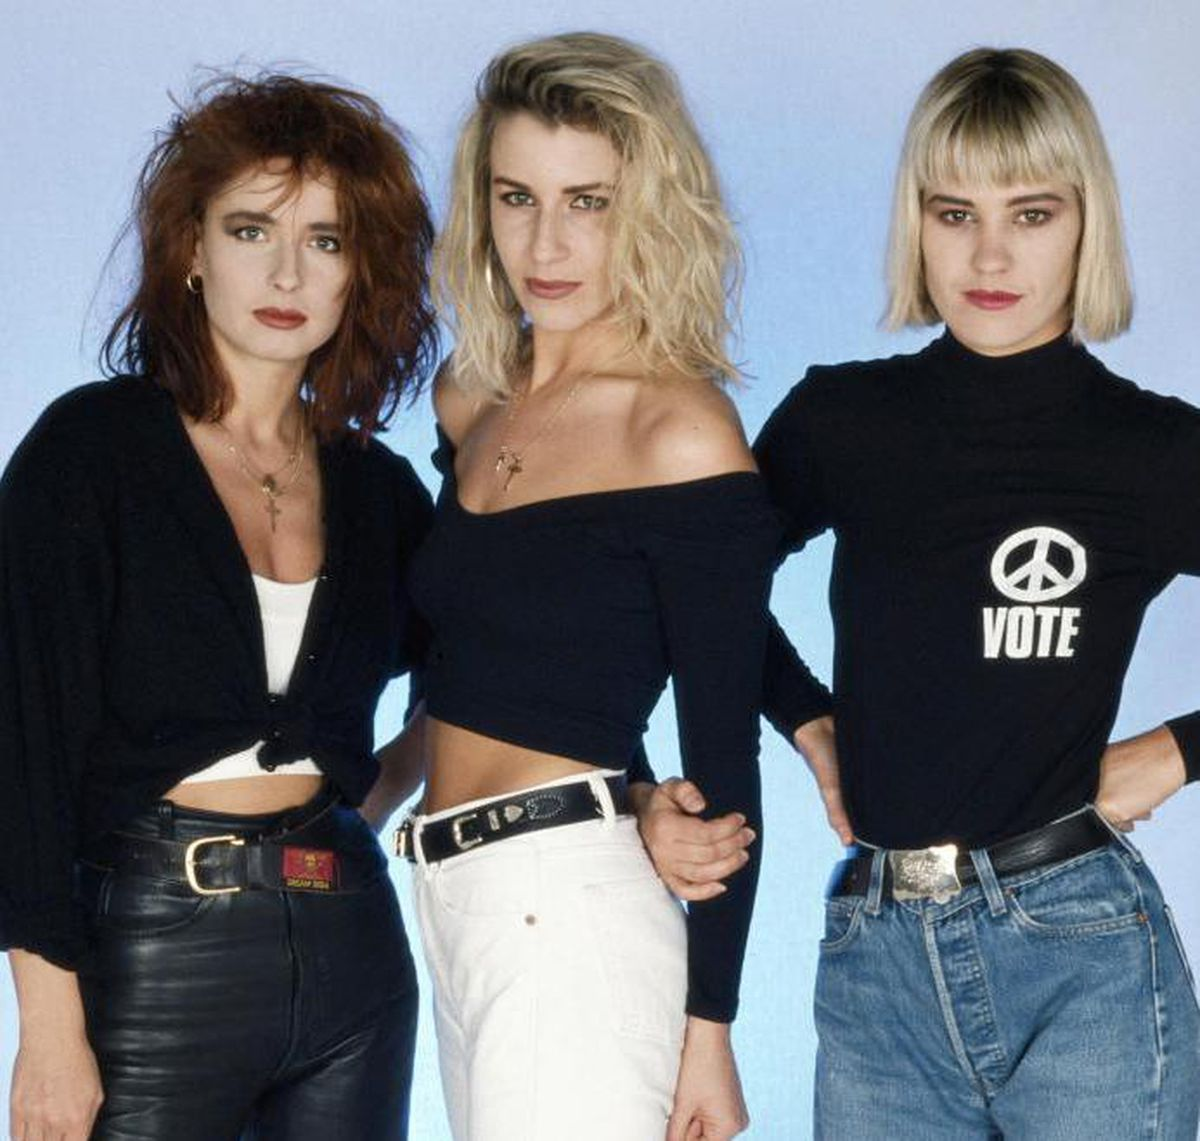 Bananarama Phone number, Email Id, Fanmail, Instagram, Tiktok, and Contact Details